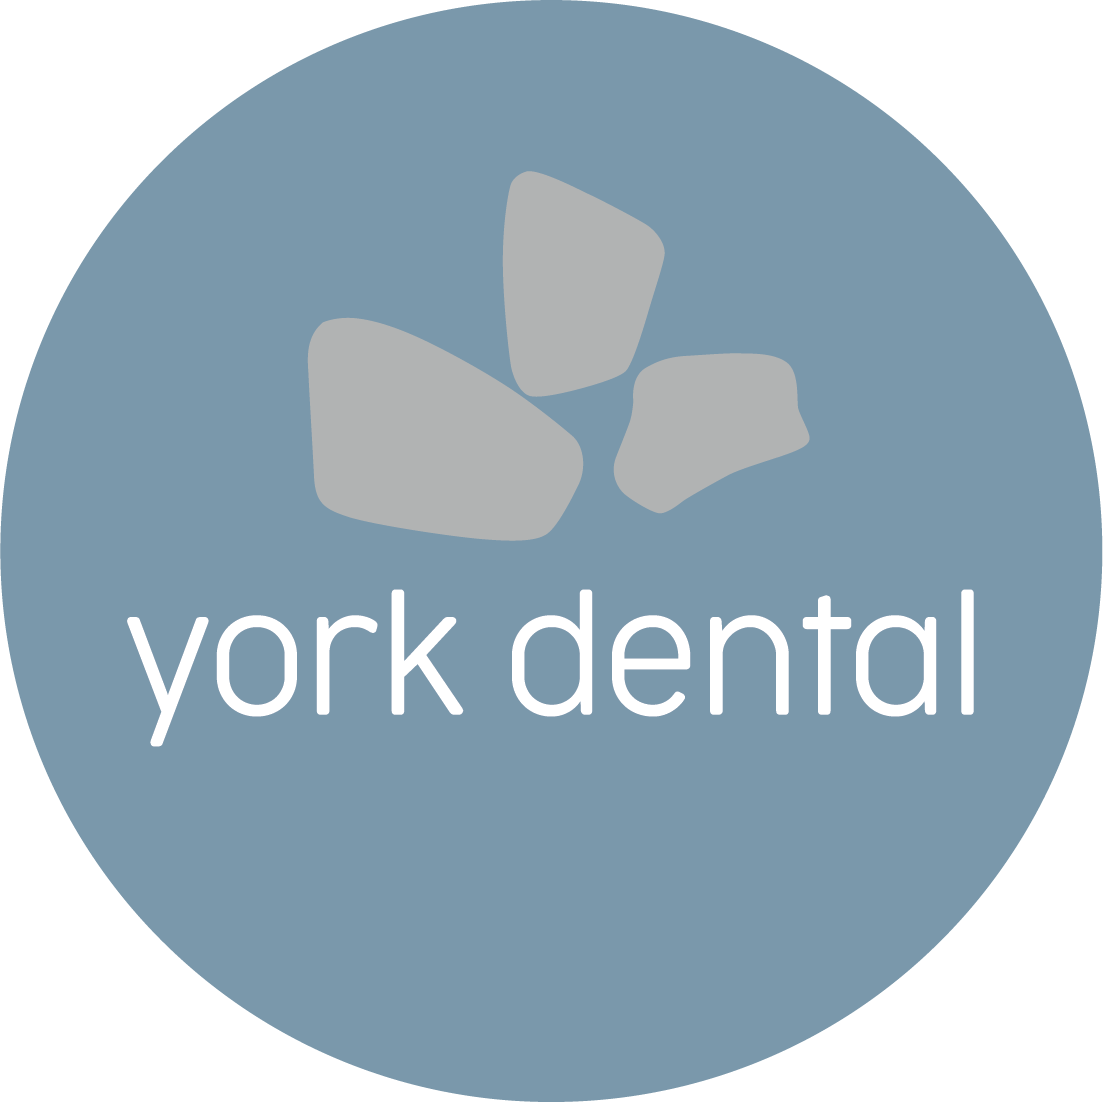 York Dental